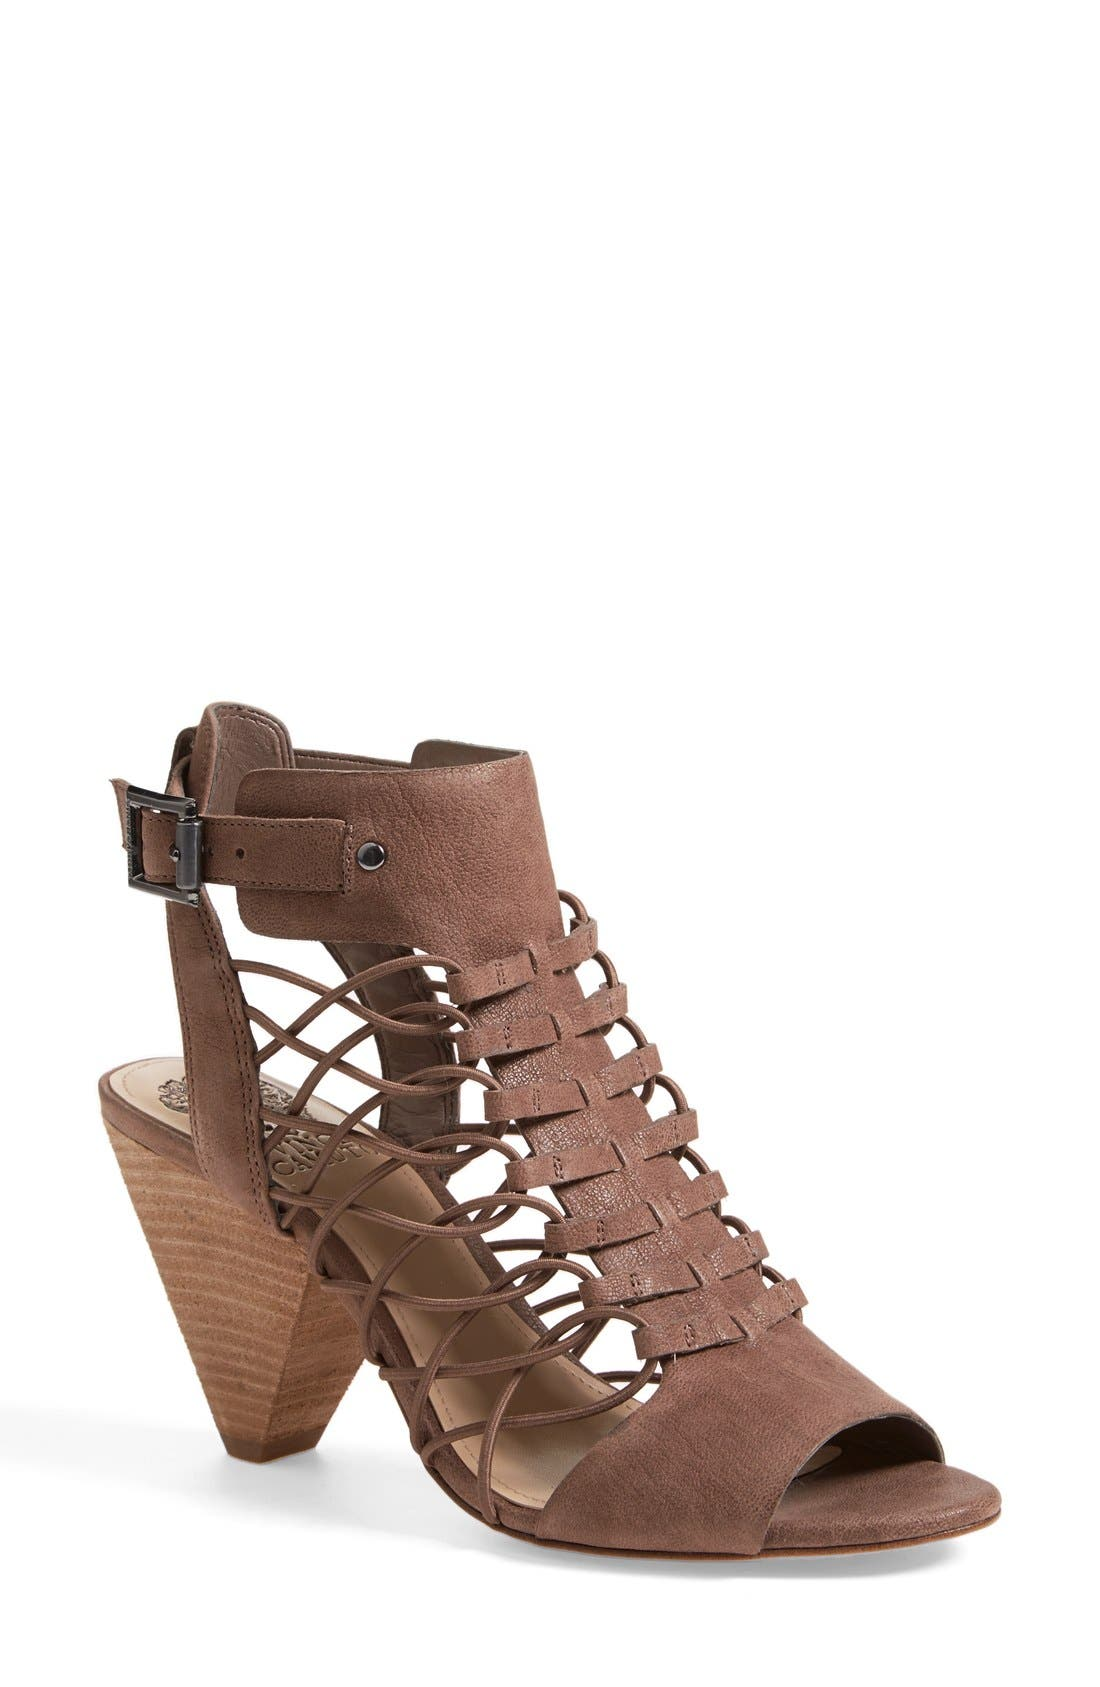 Alternate Image 1 Selected - Vince Camuto 'Evel' Leather Sandal (Women) (Nordstrom Exclusive)